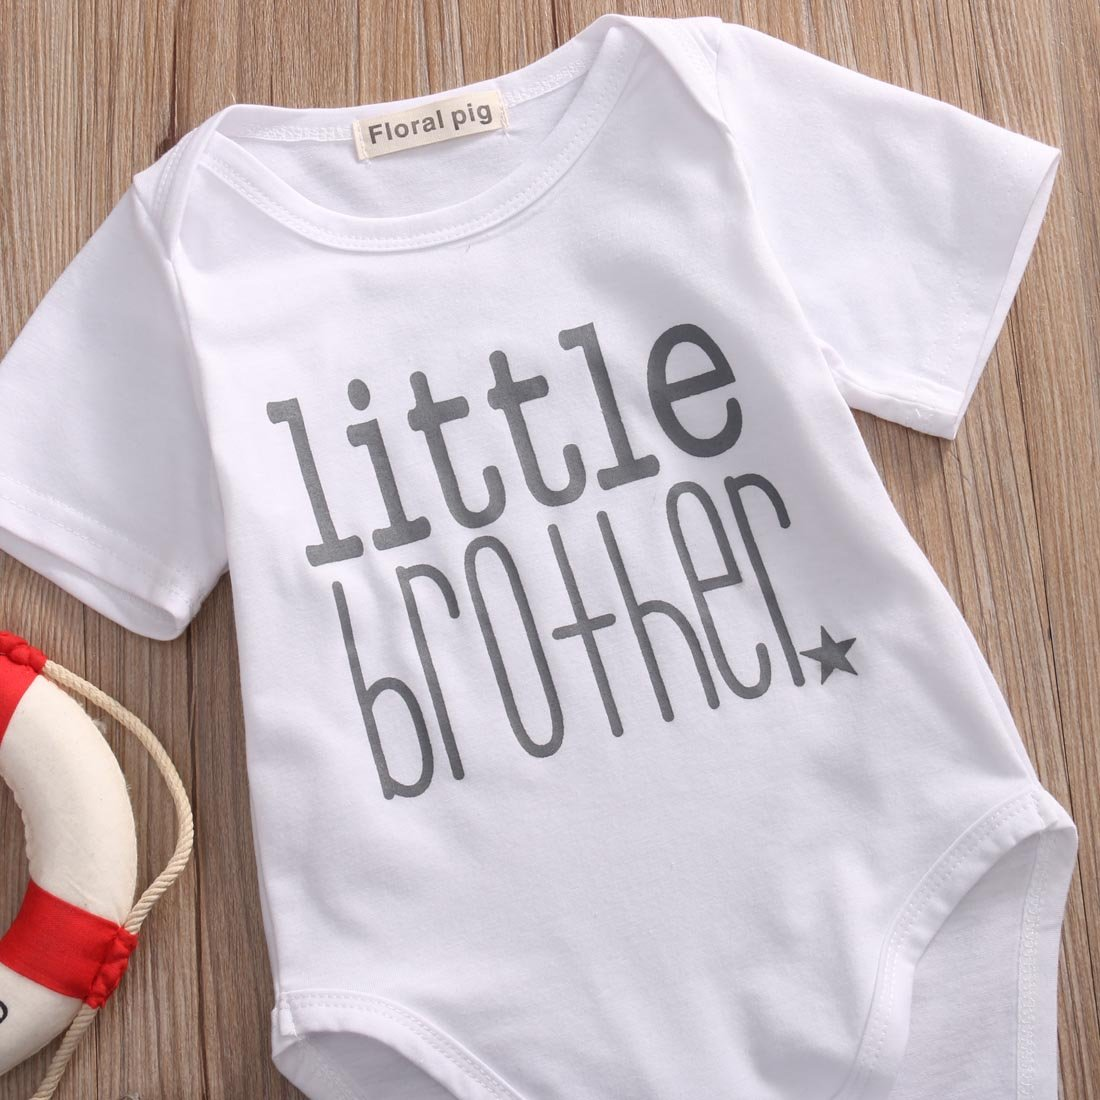 Gaono Toddler//Newborn Boys Shirt Big Brother T-Shirt /& Little Brother Romper /&Little Sister Tee Tops